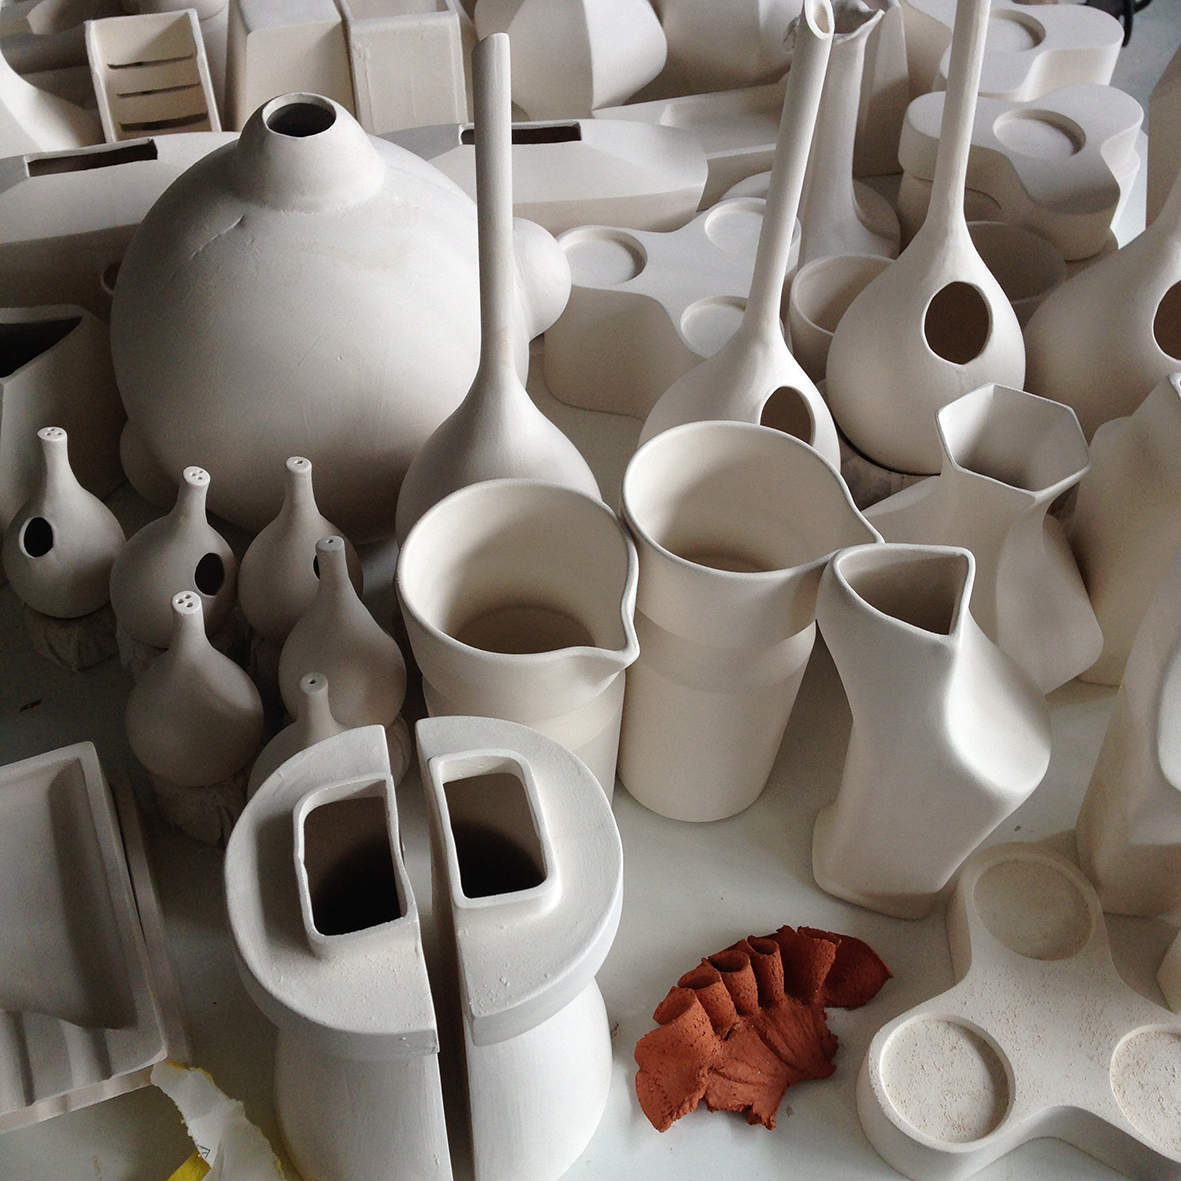 2.Kingston_Ceramics